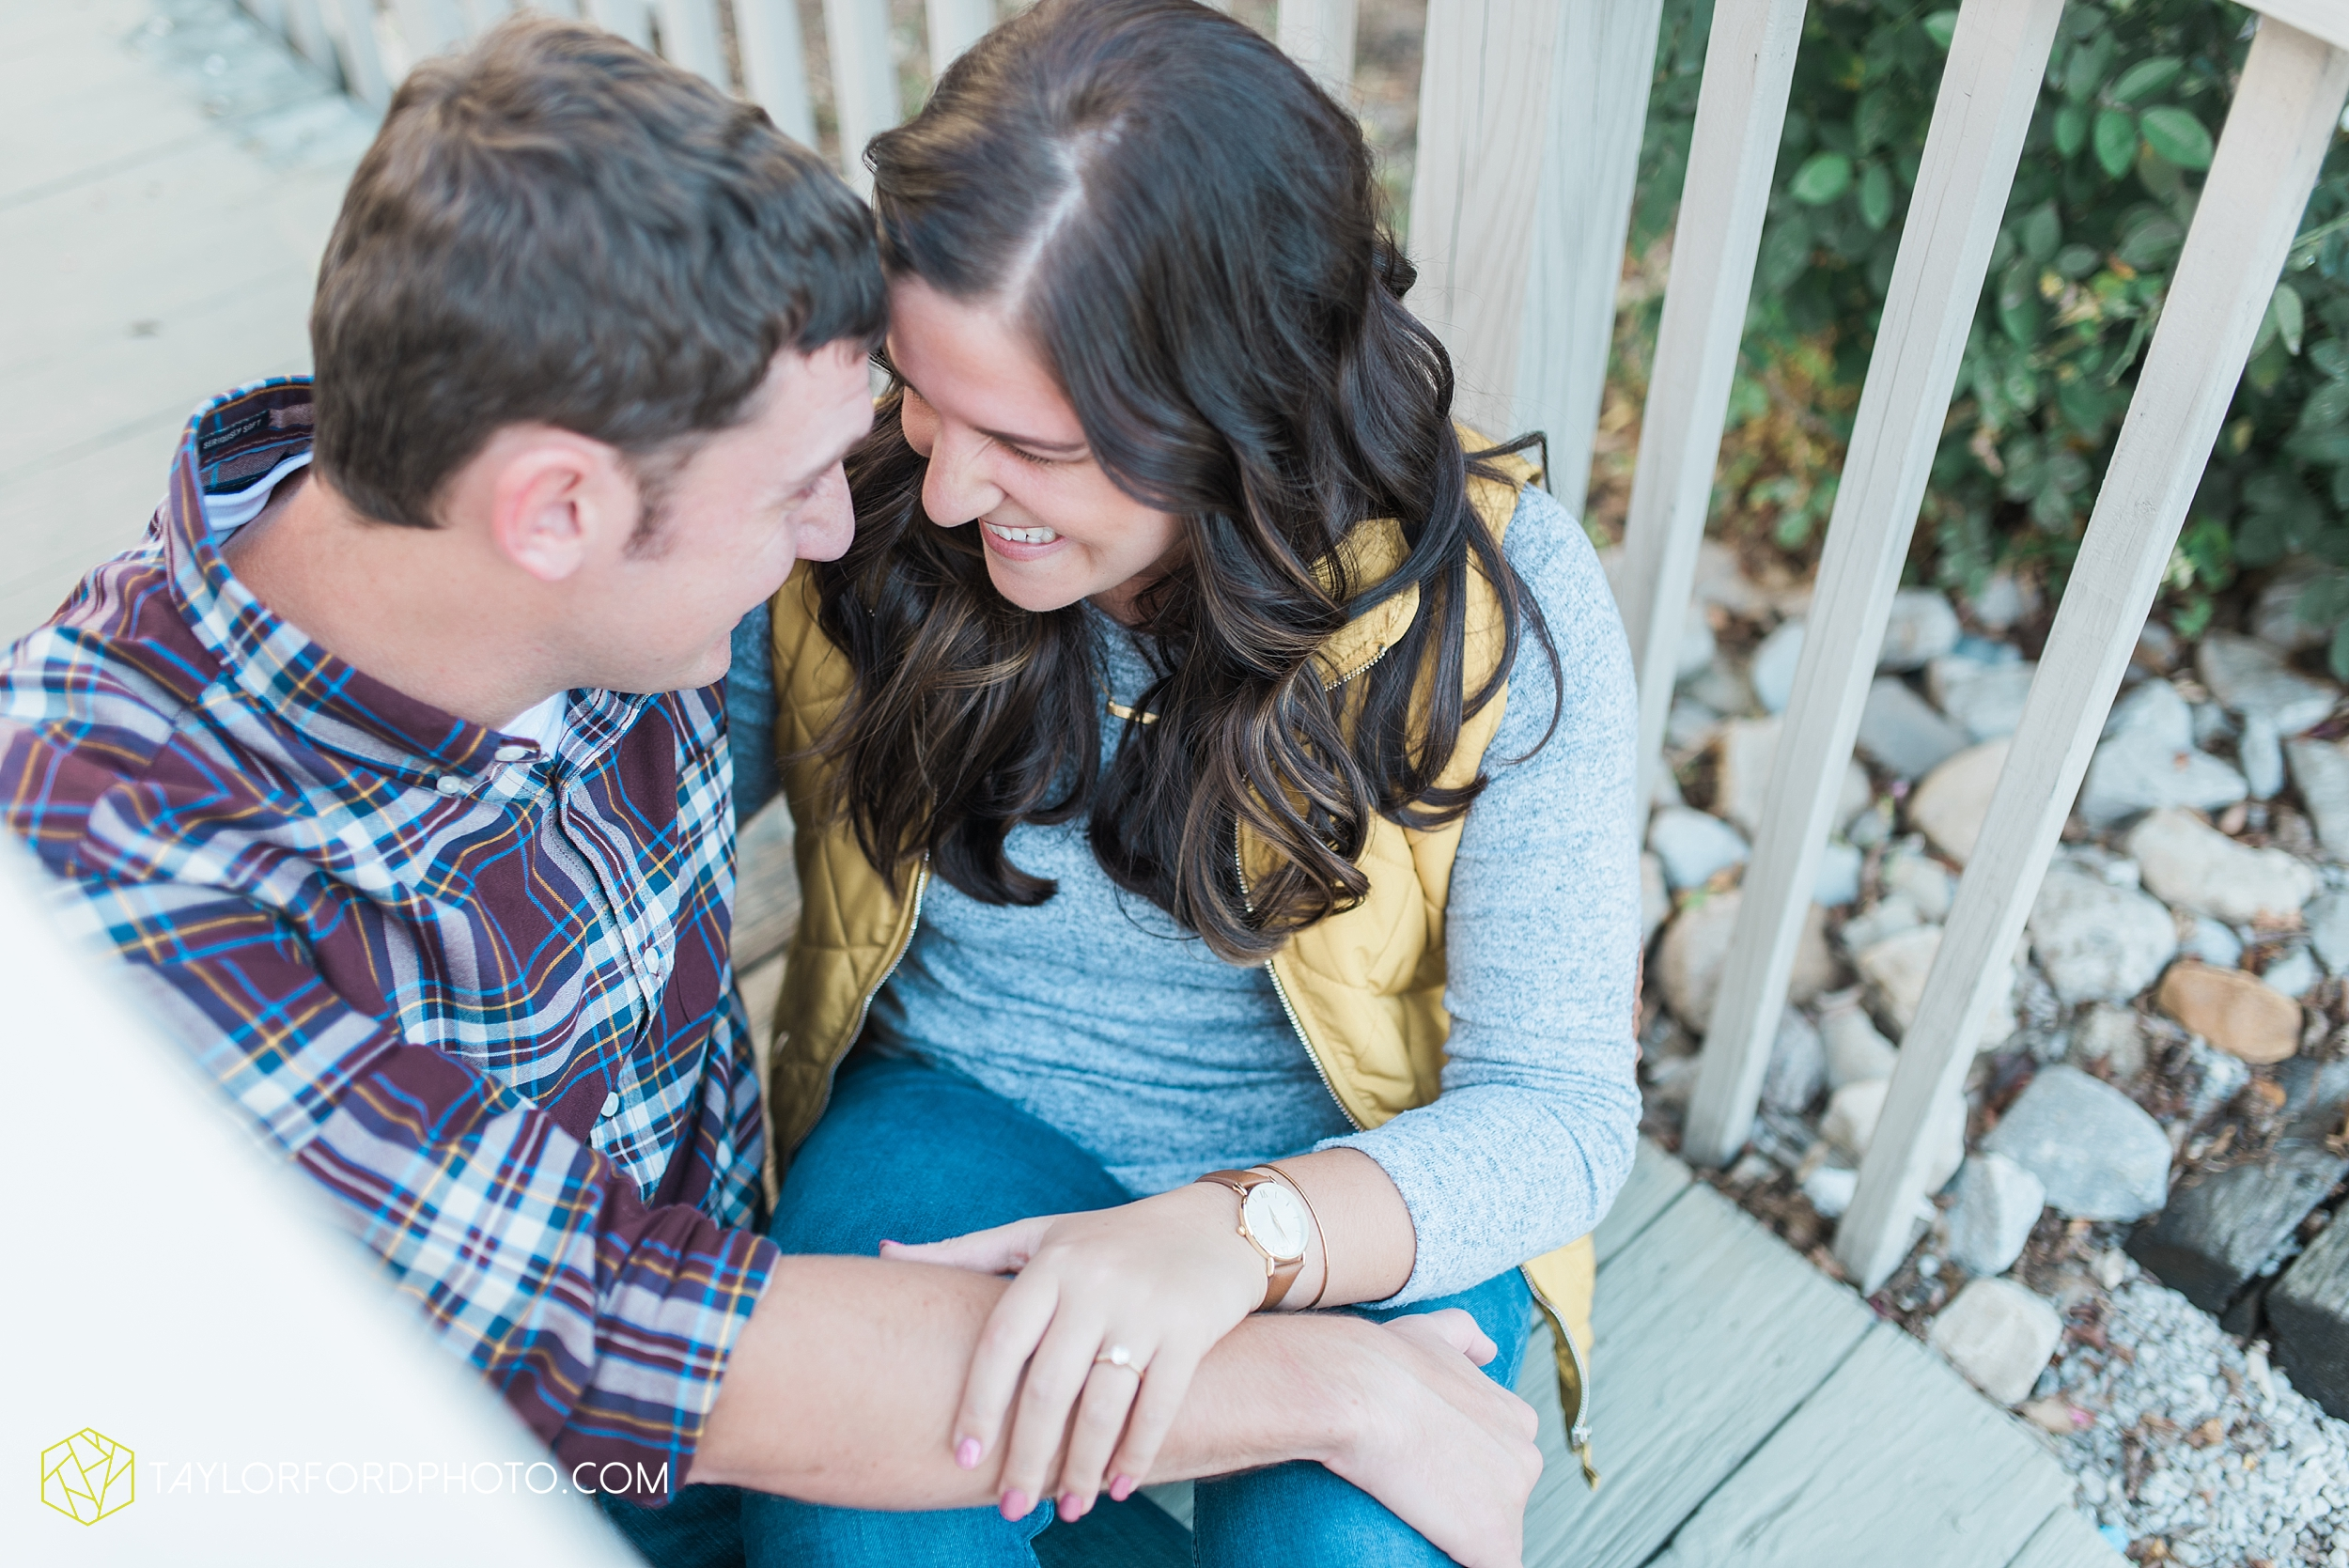 fort-wayne-indiana-engagement-wedding-photographer-Taylor-Ford-Photography-salomon-farm-park_3551.jpg